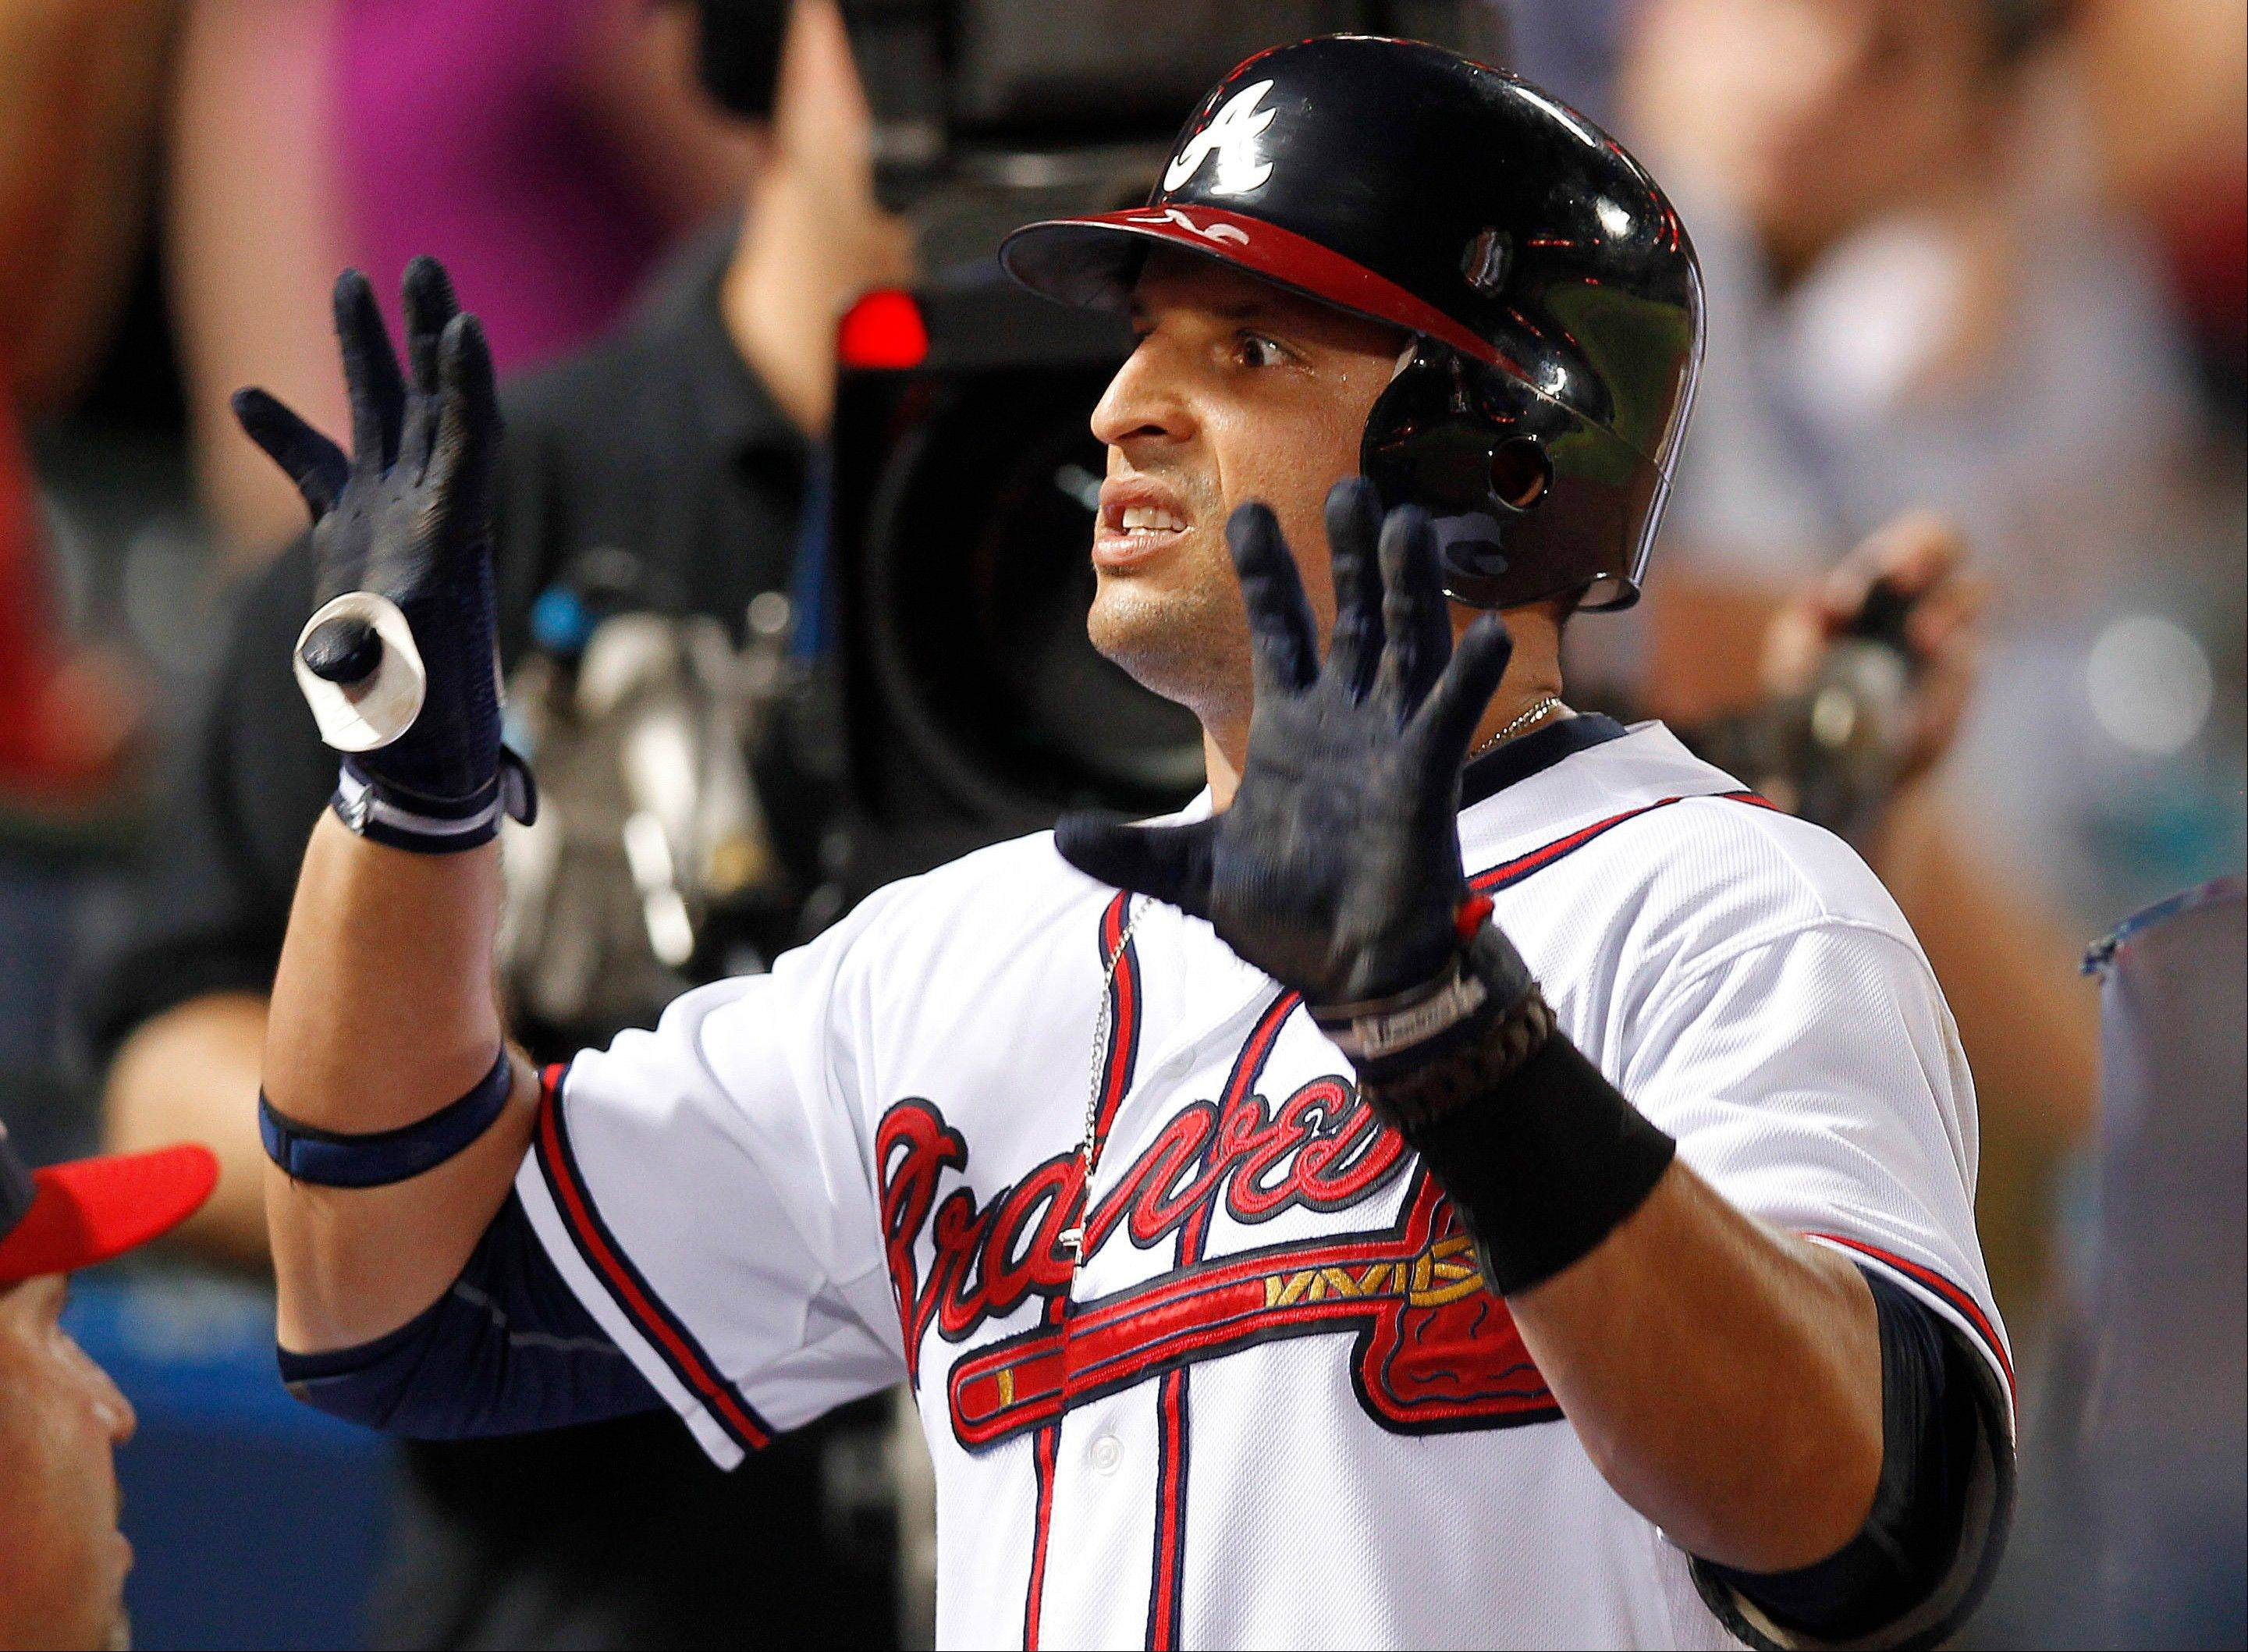 The Atlanta Braves' Martin Prado celebrates in the dugout after hitting a three-run home run Tuesday during the seventh inning.